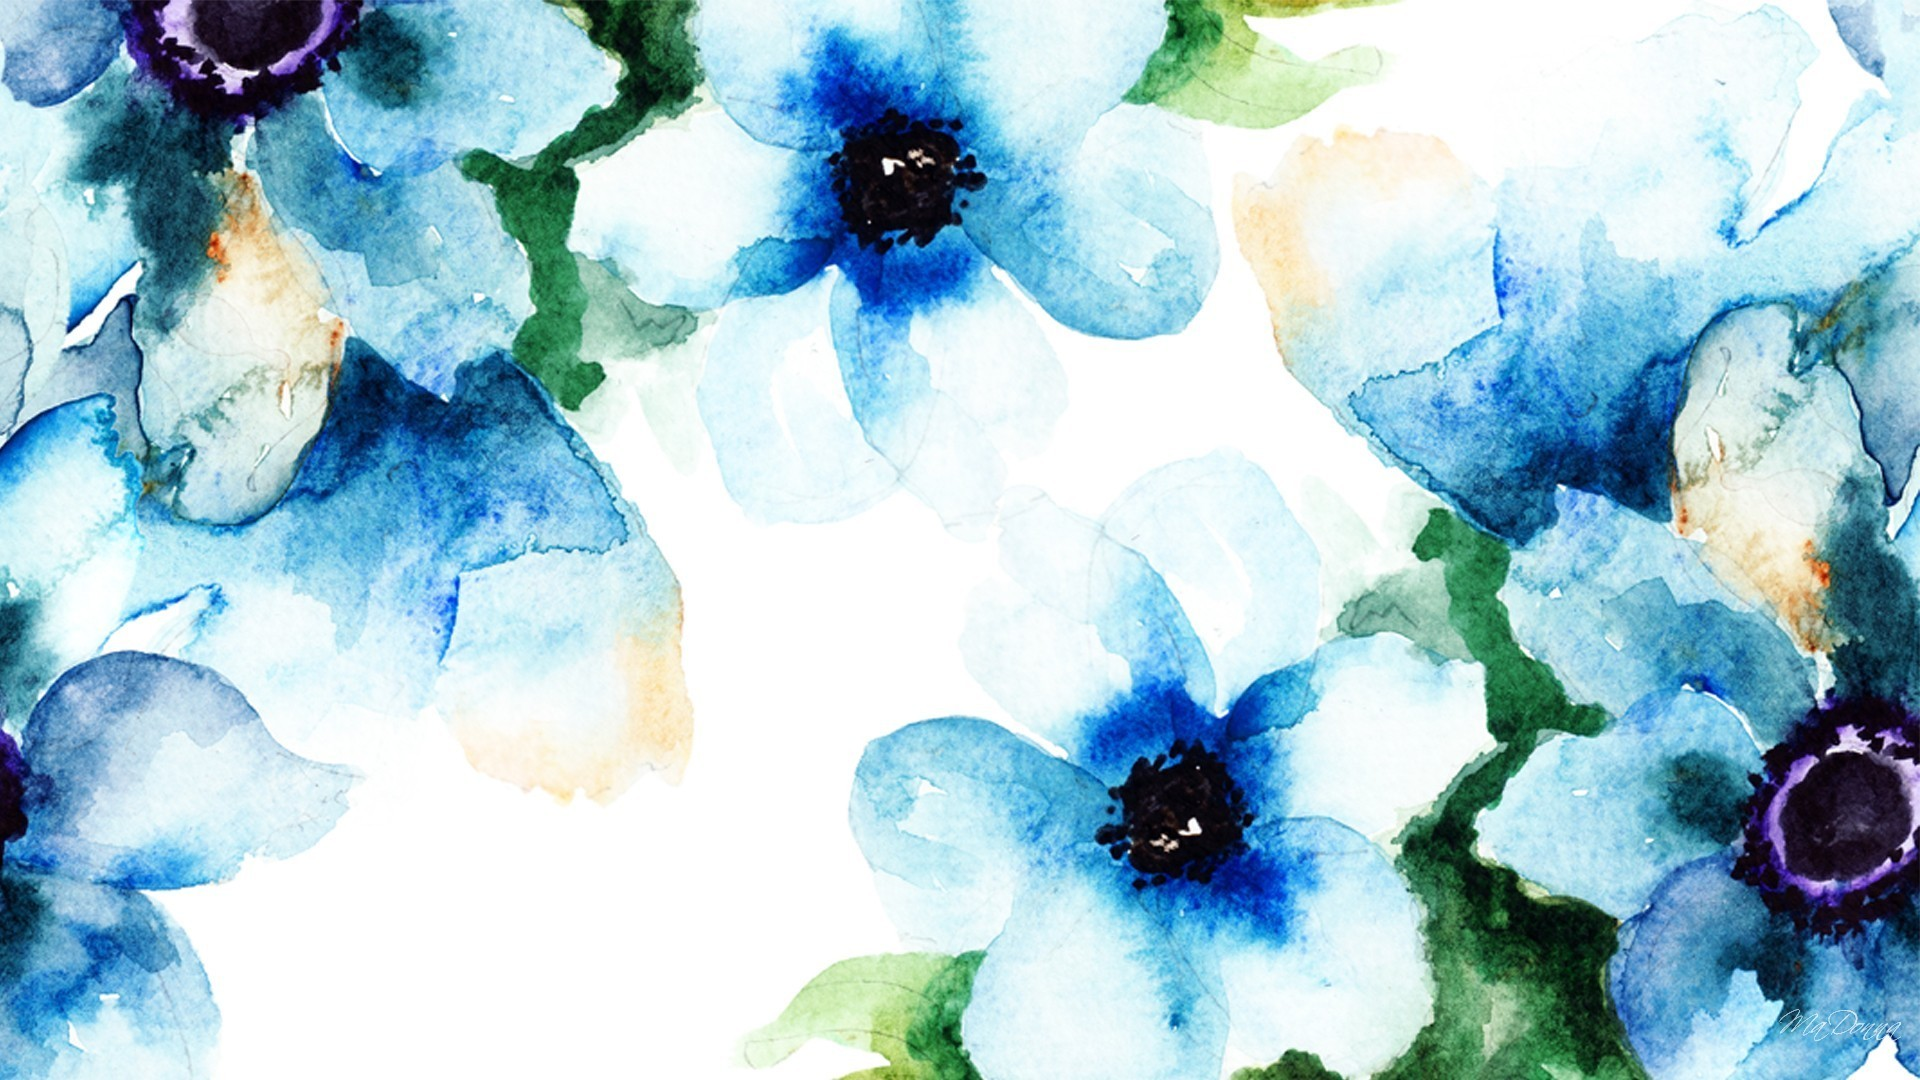 30 Free Beautiful Watercolor Wallpapers That Should Be on Your Desktop – 30  | Wallpapers | Pinterest | Watercolor wallpaper, Wallpaper and Watercolor